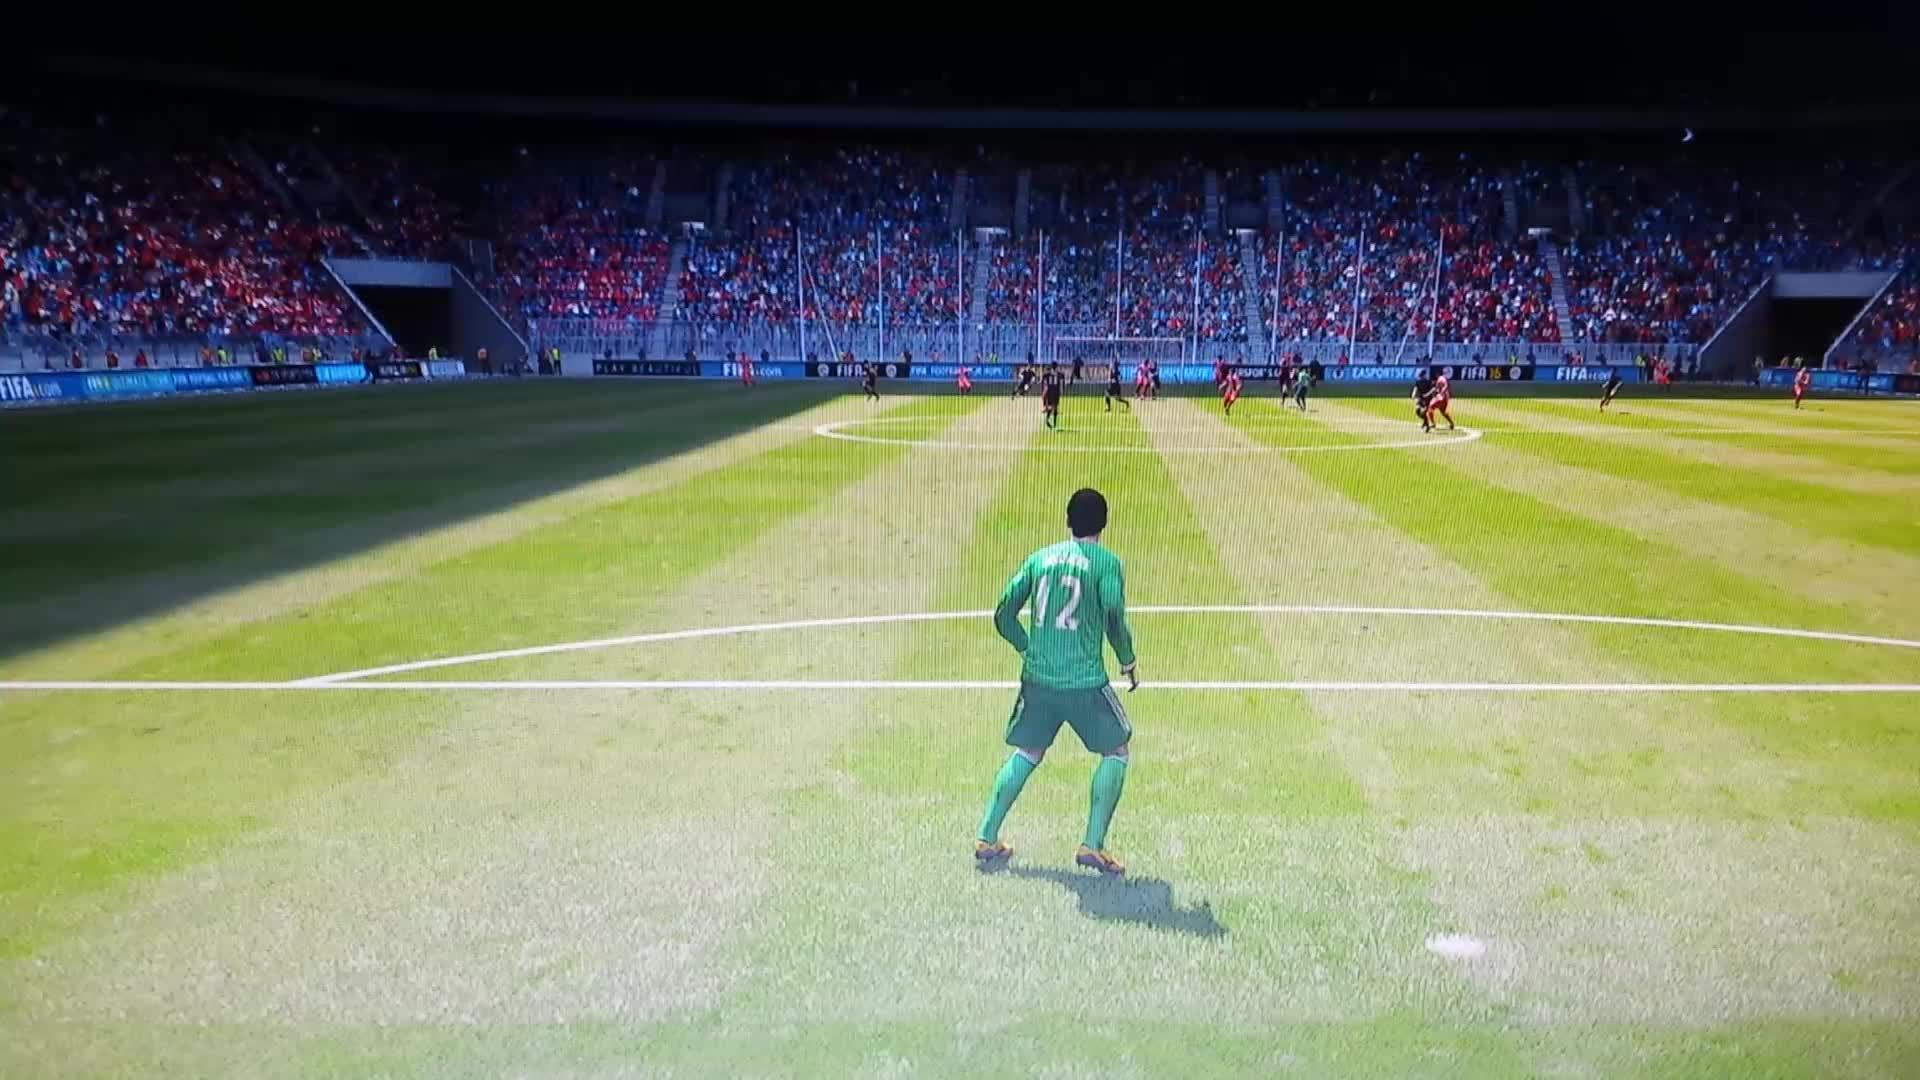 Glad FIFA16 goalkeepers work properly GIFs